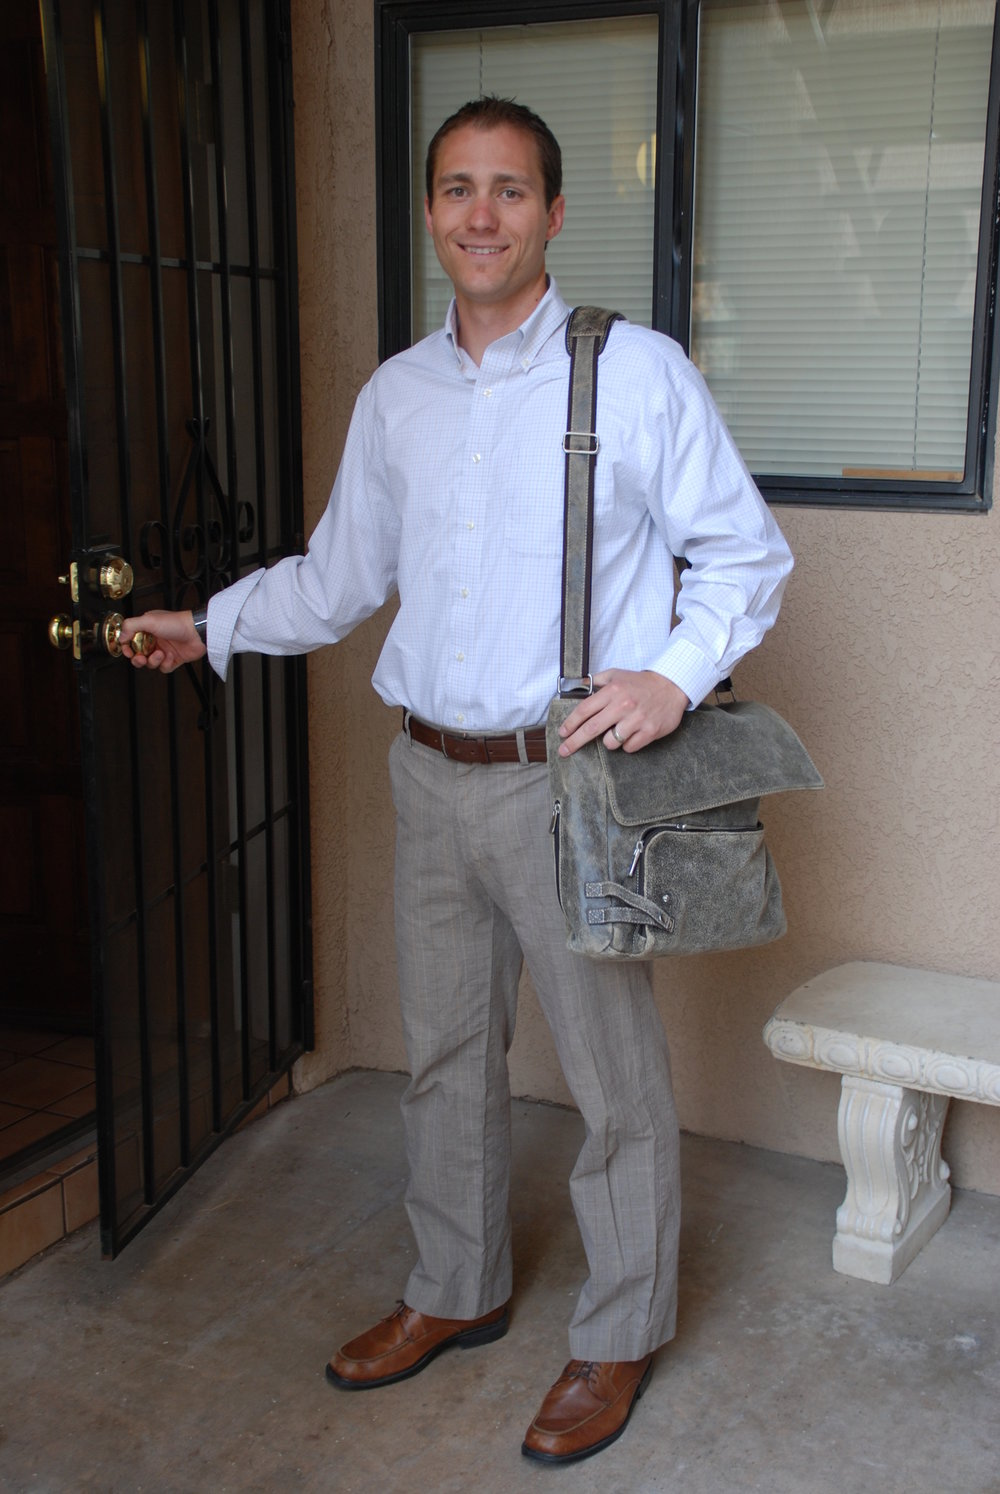 My first day of work at New Life Bible Fellowship in Tucson, AZ on June 1, 2011.